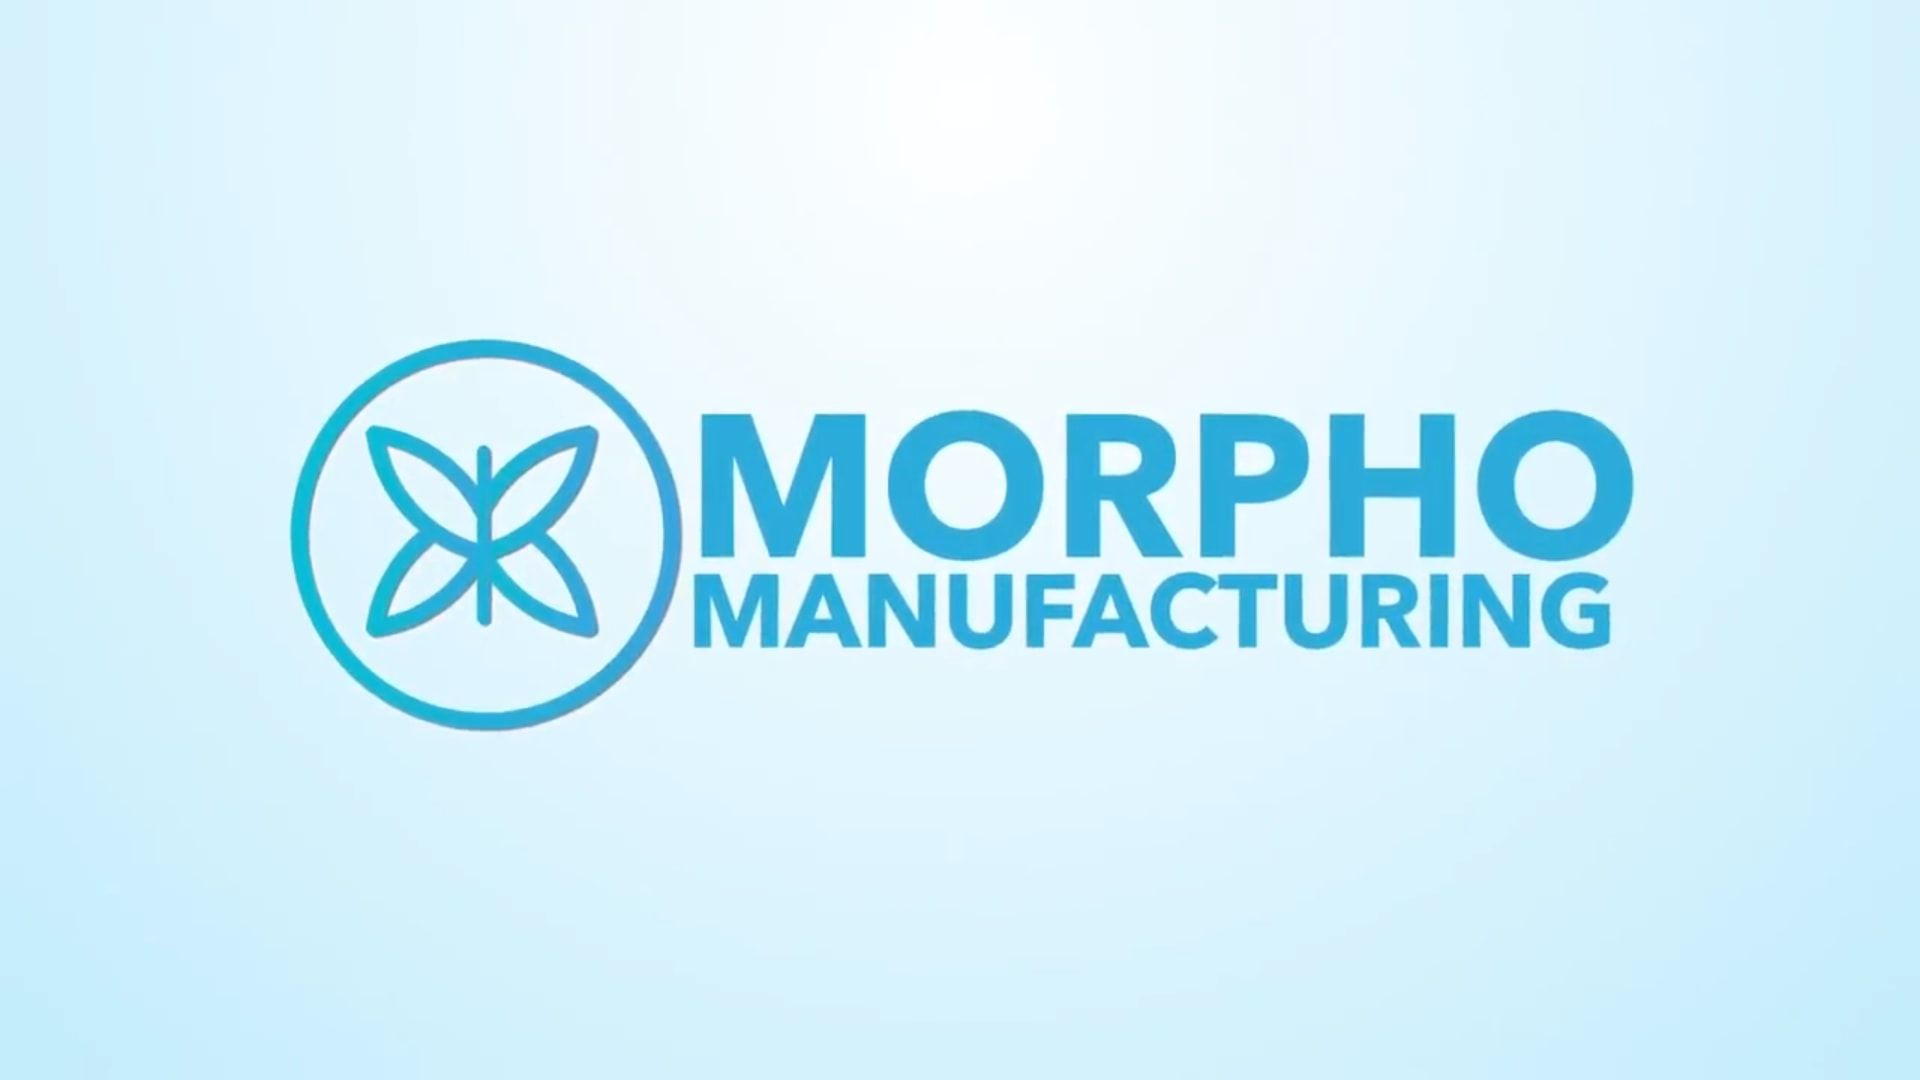 Manufacturing in china made easy by MorphoMFG